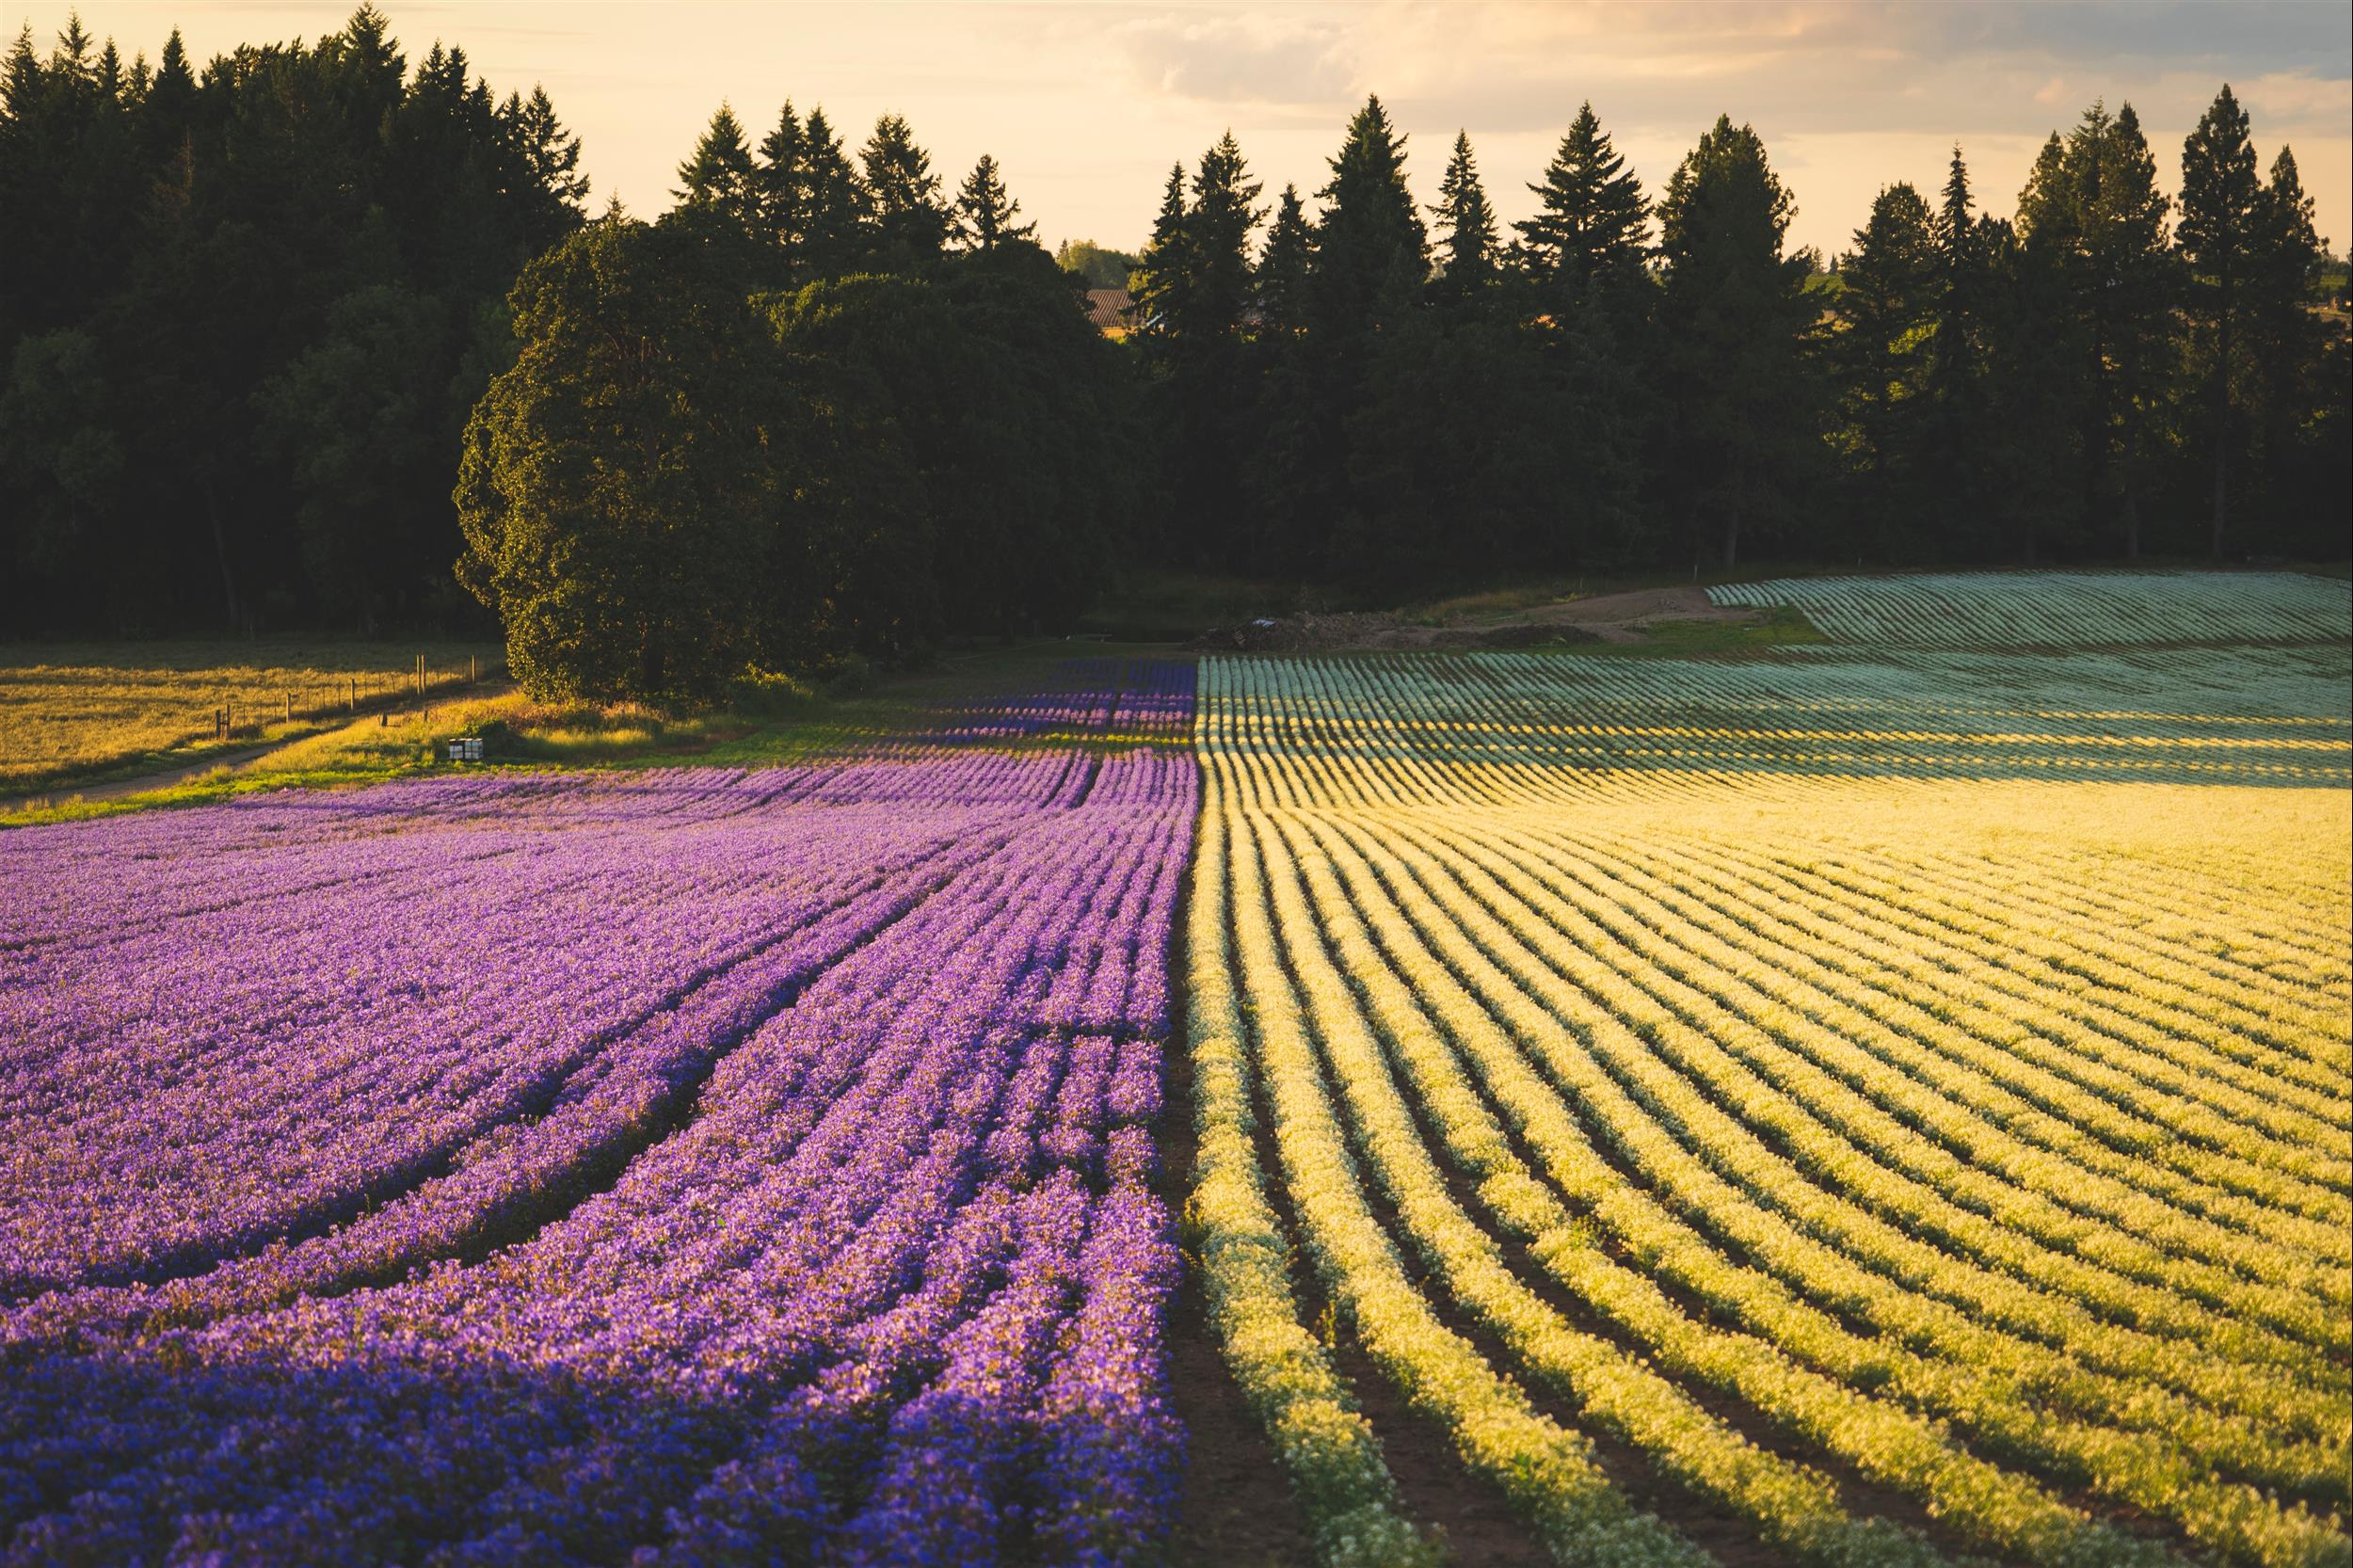 rows and rows of purple and yellow flowers and green trees